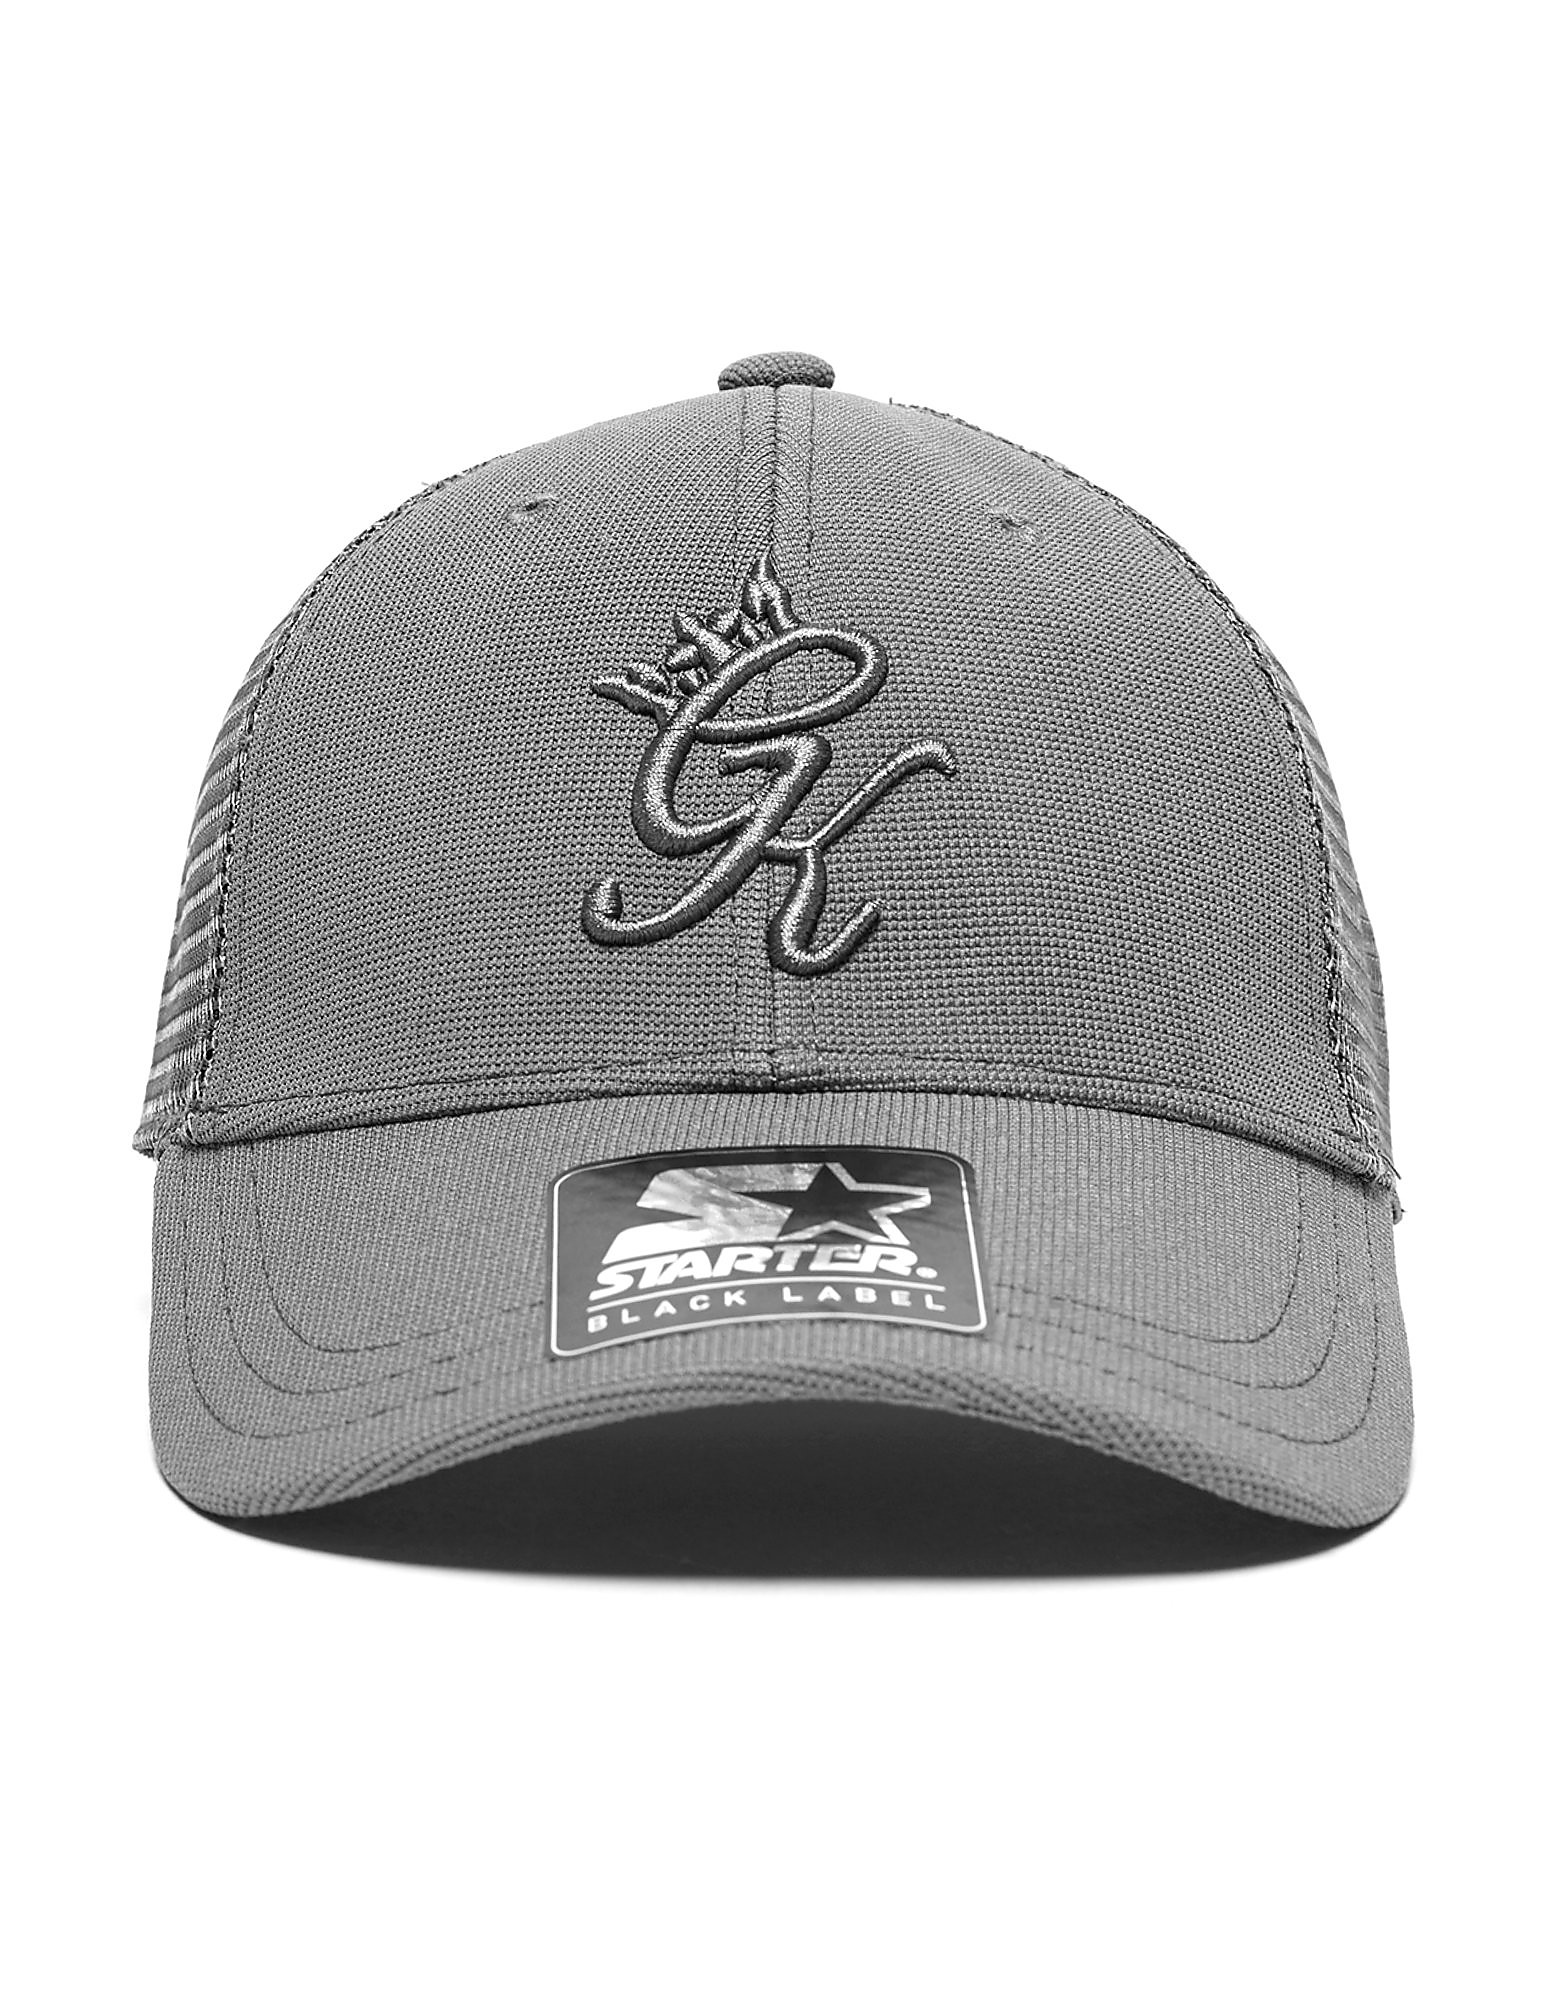 Gym King Trucker Cap